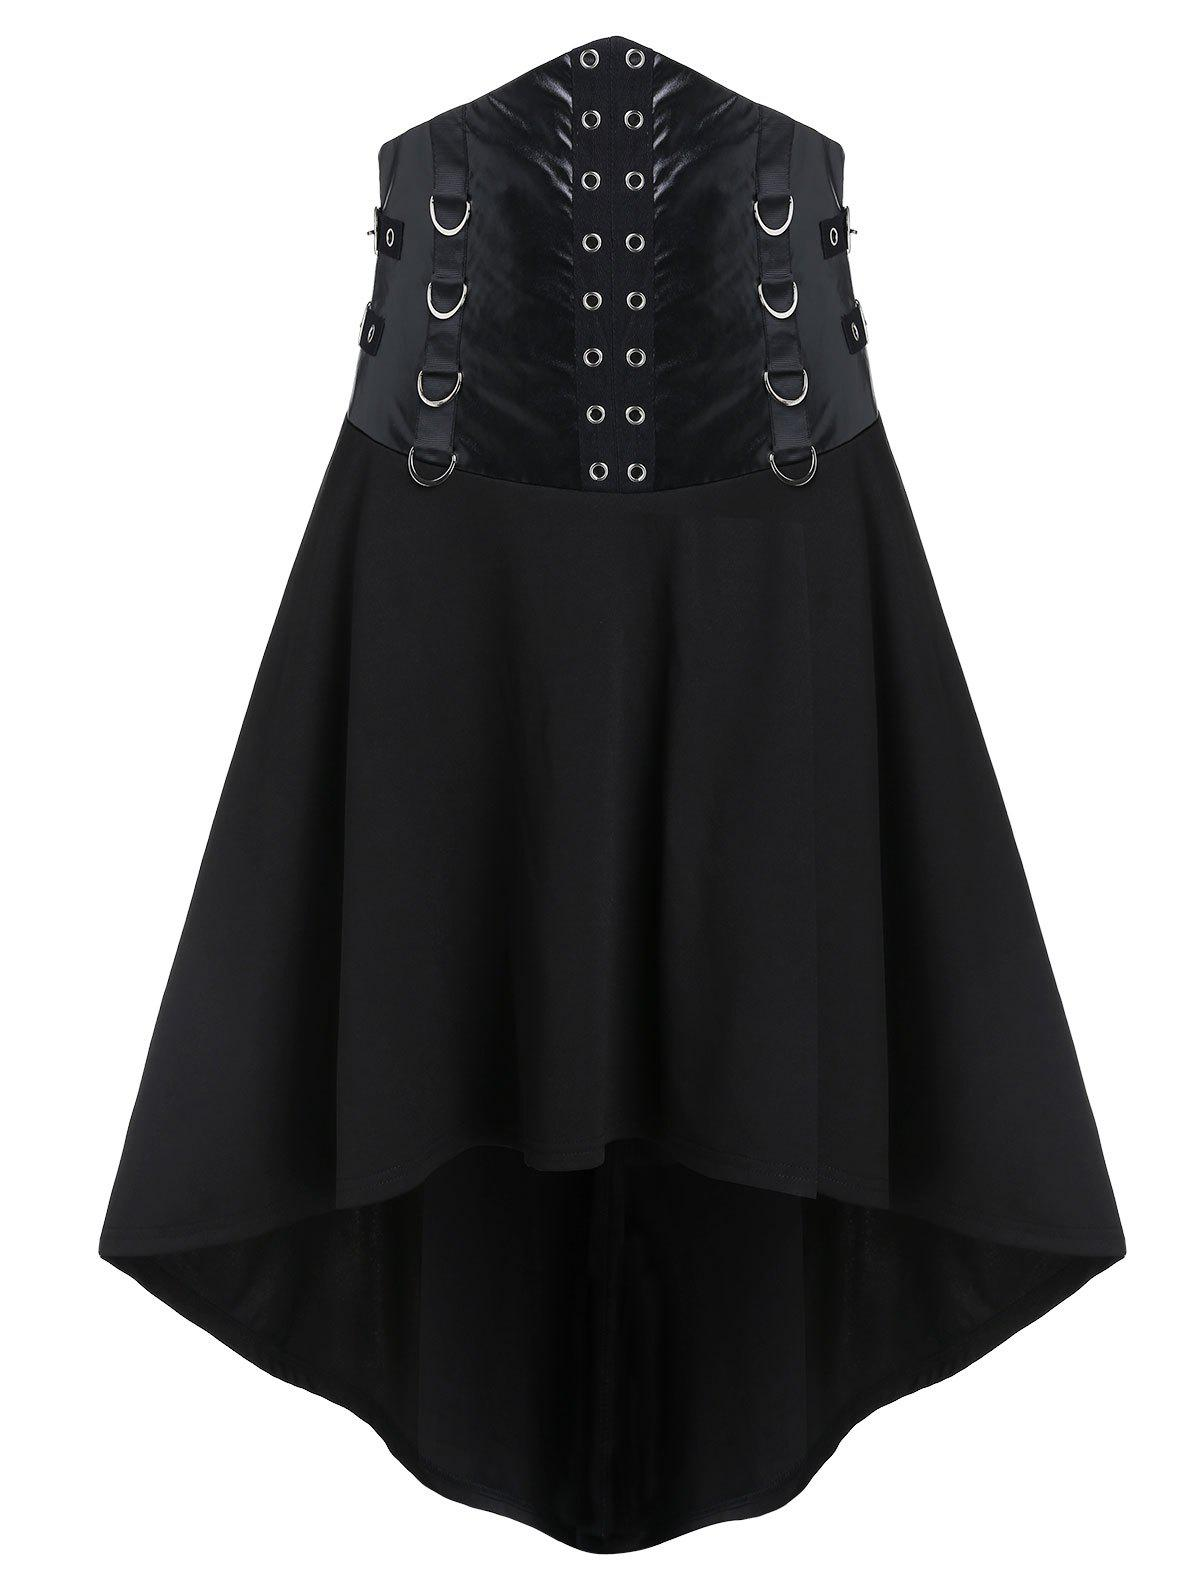 Store Gothic D Rings Grommets High Low Punk Skirt